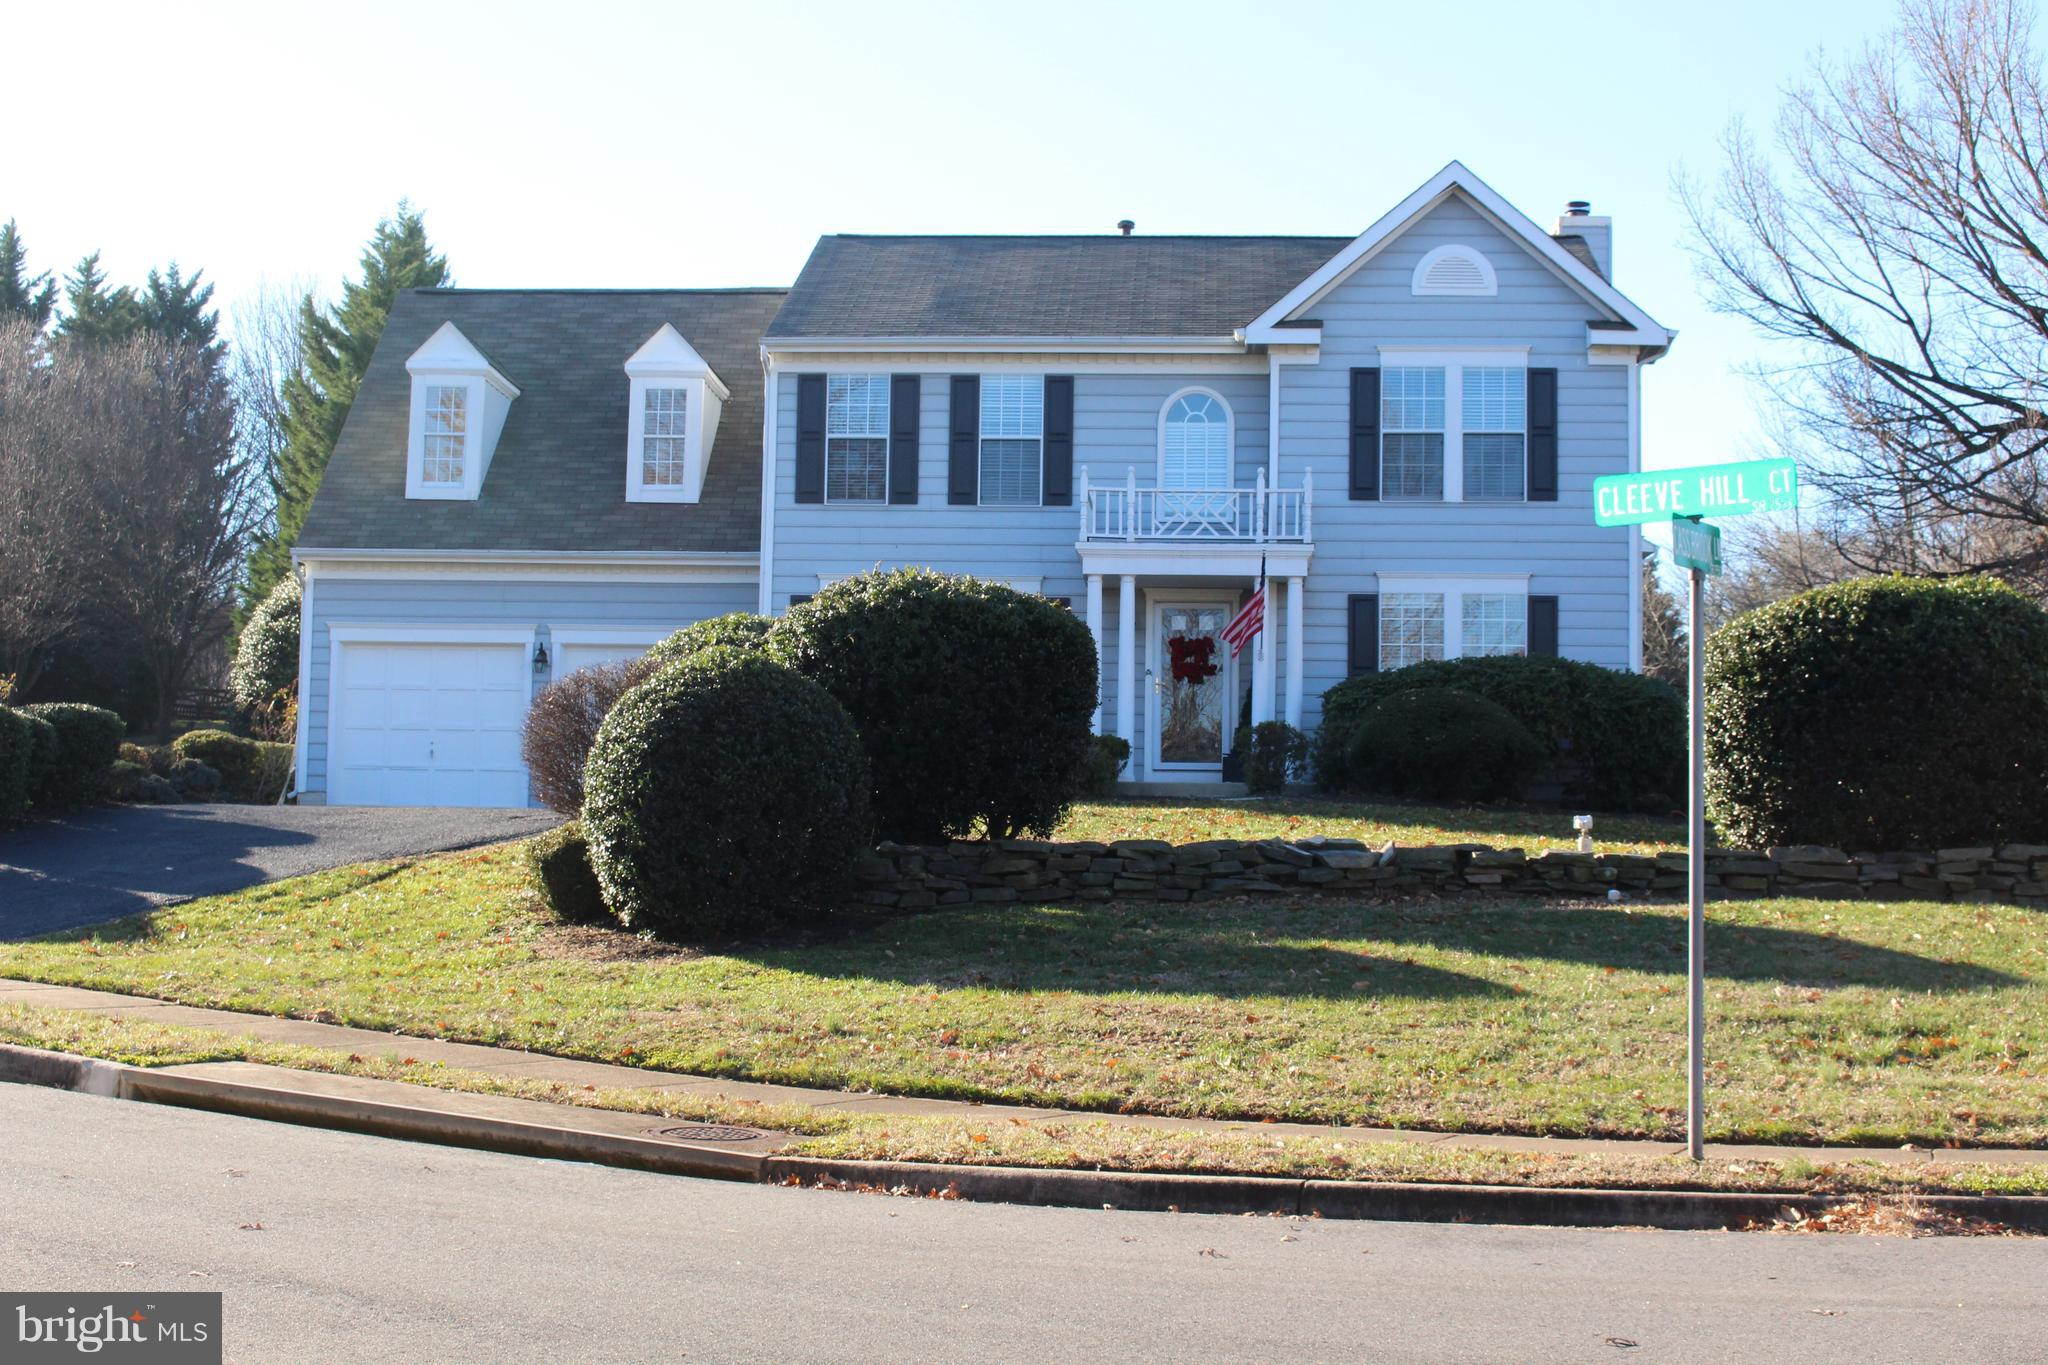 Prince William County Va Homes For Sale Lord And Saunders Real Estate